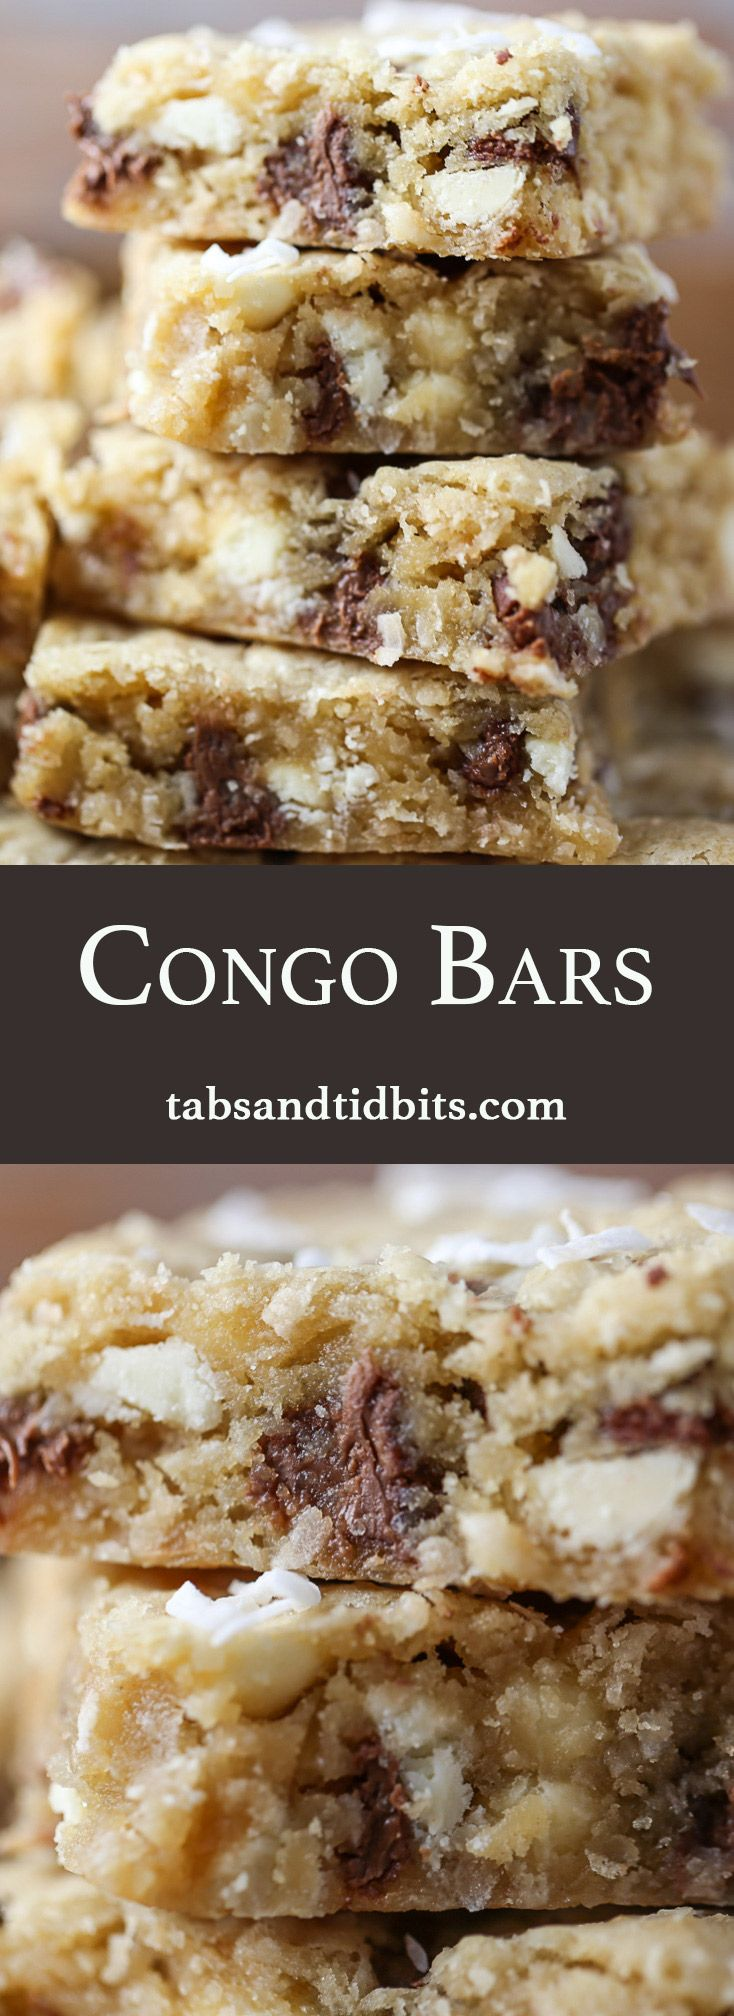 Congo bars, Congo and White chocolate chips on Pinterest